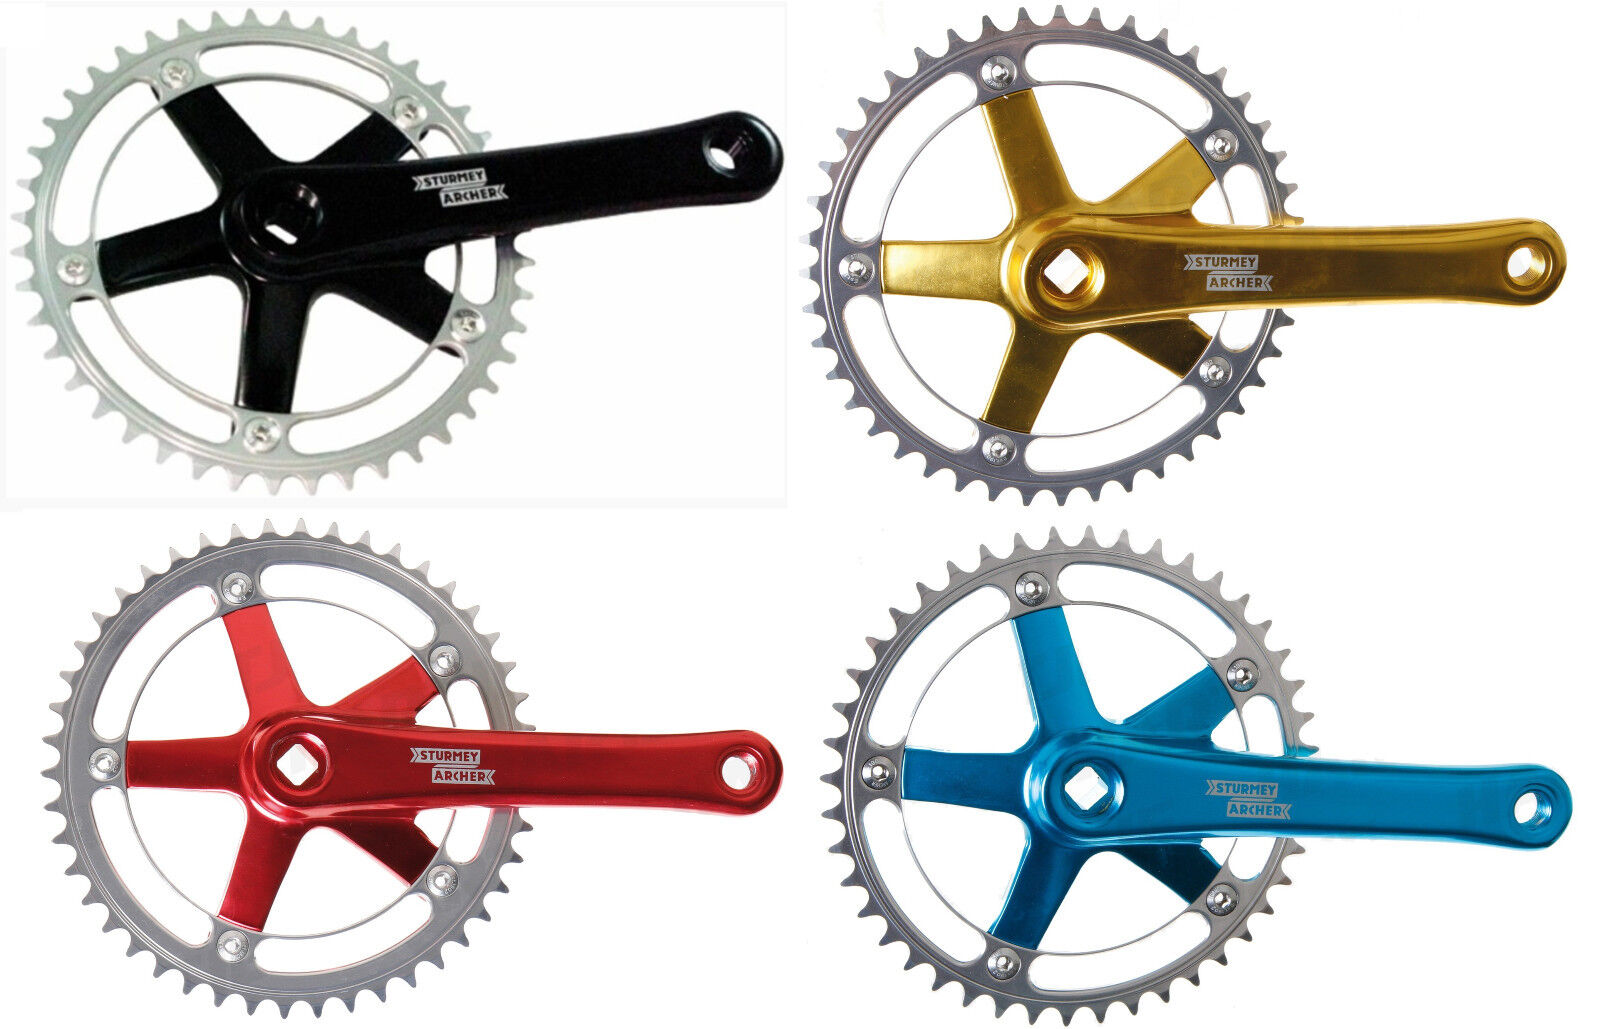 4 Kant SingleSpeed Crank Sturmey Archer 46 Zähne Various Colorees